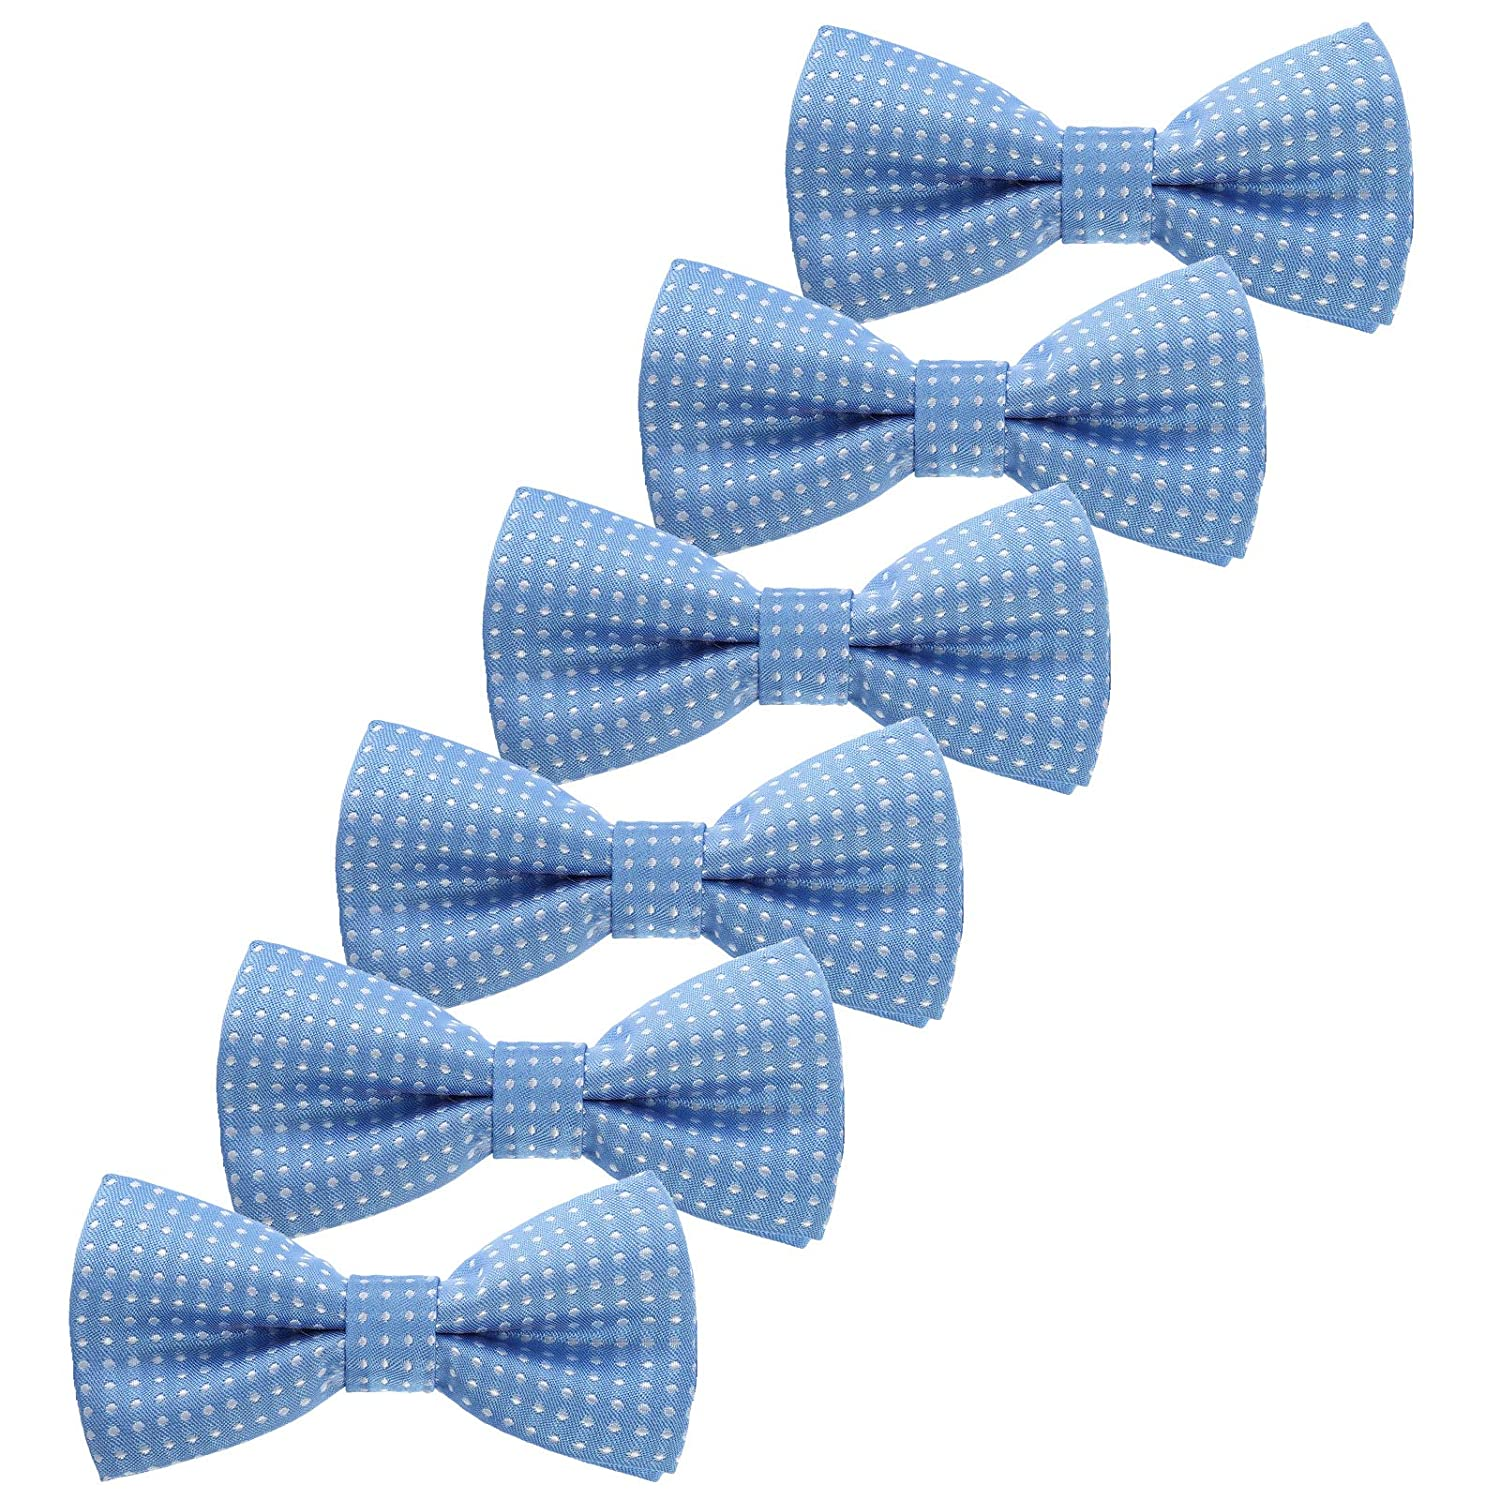 Boys Children Formal Bow Ties - 6 Pack of Solid Color Adjustable Pre Tied Bowties for Wedding Party